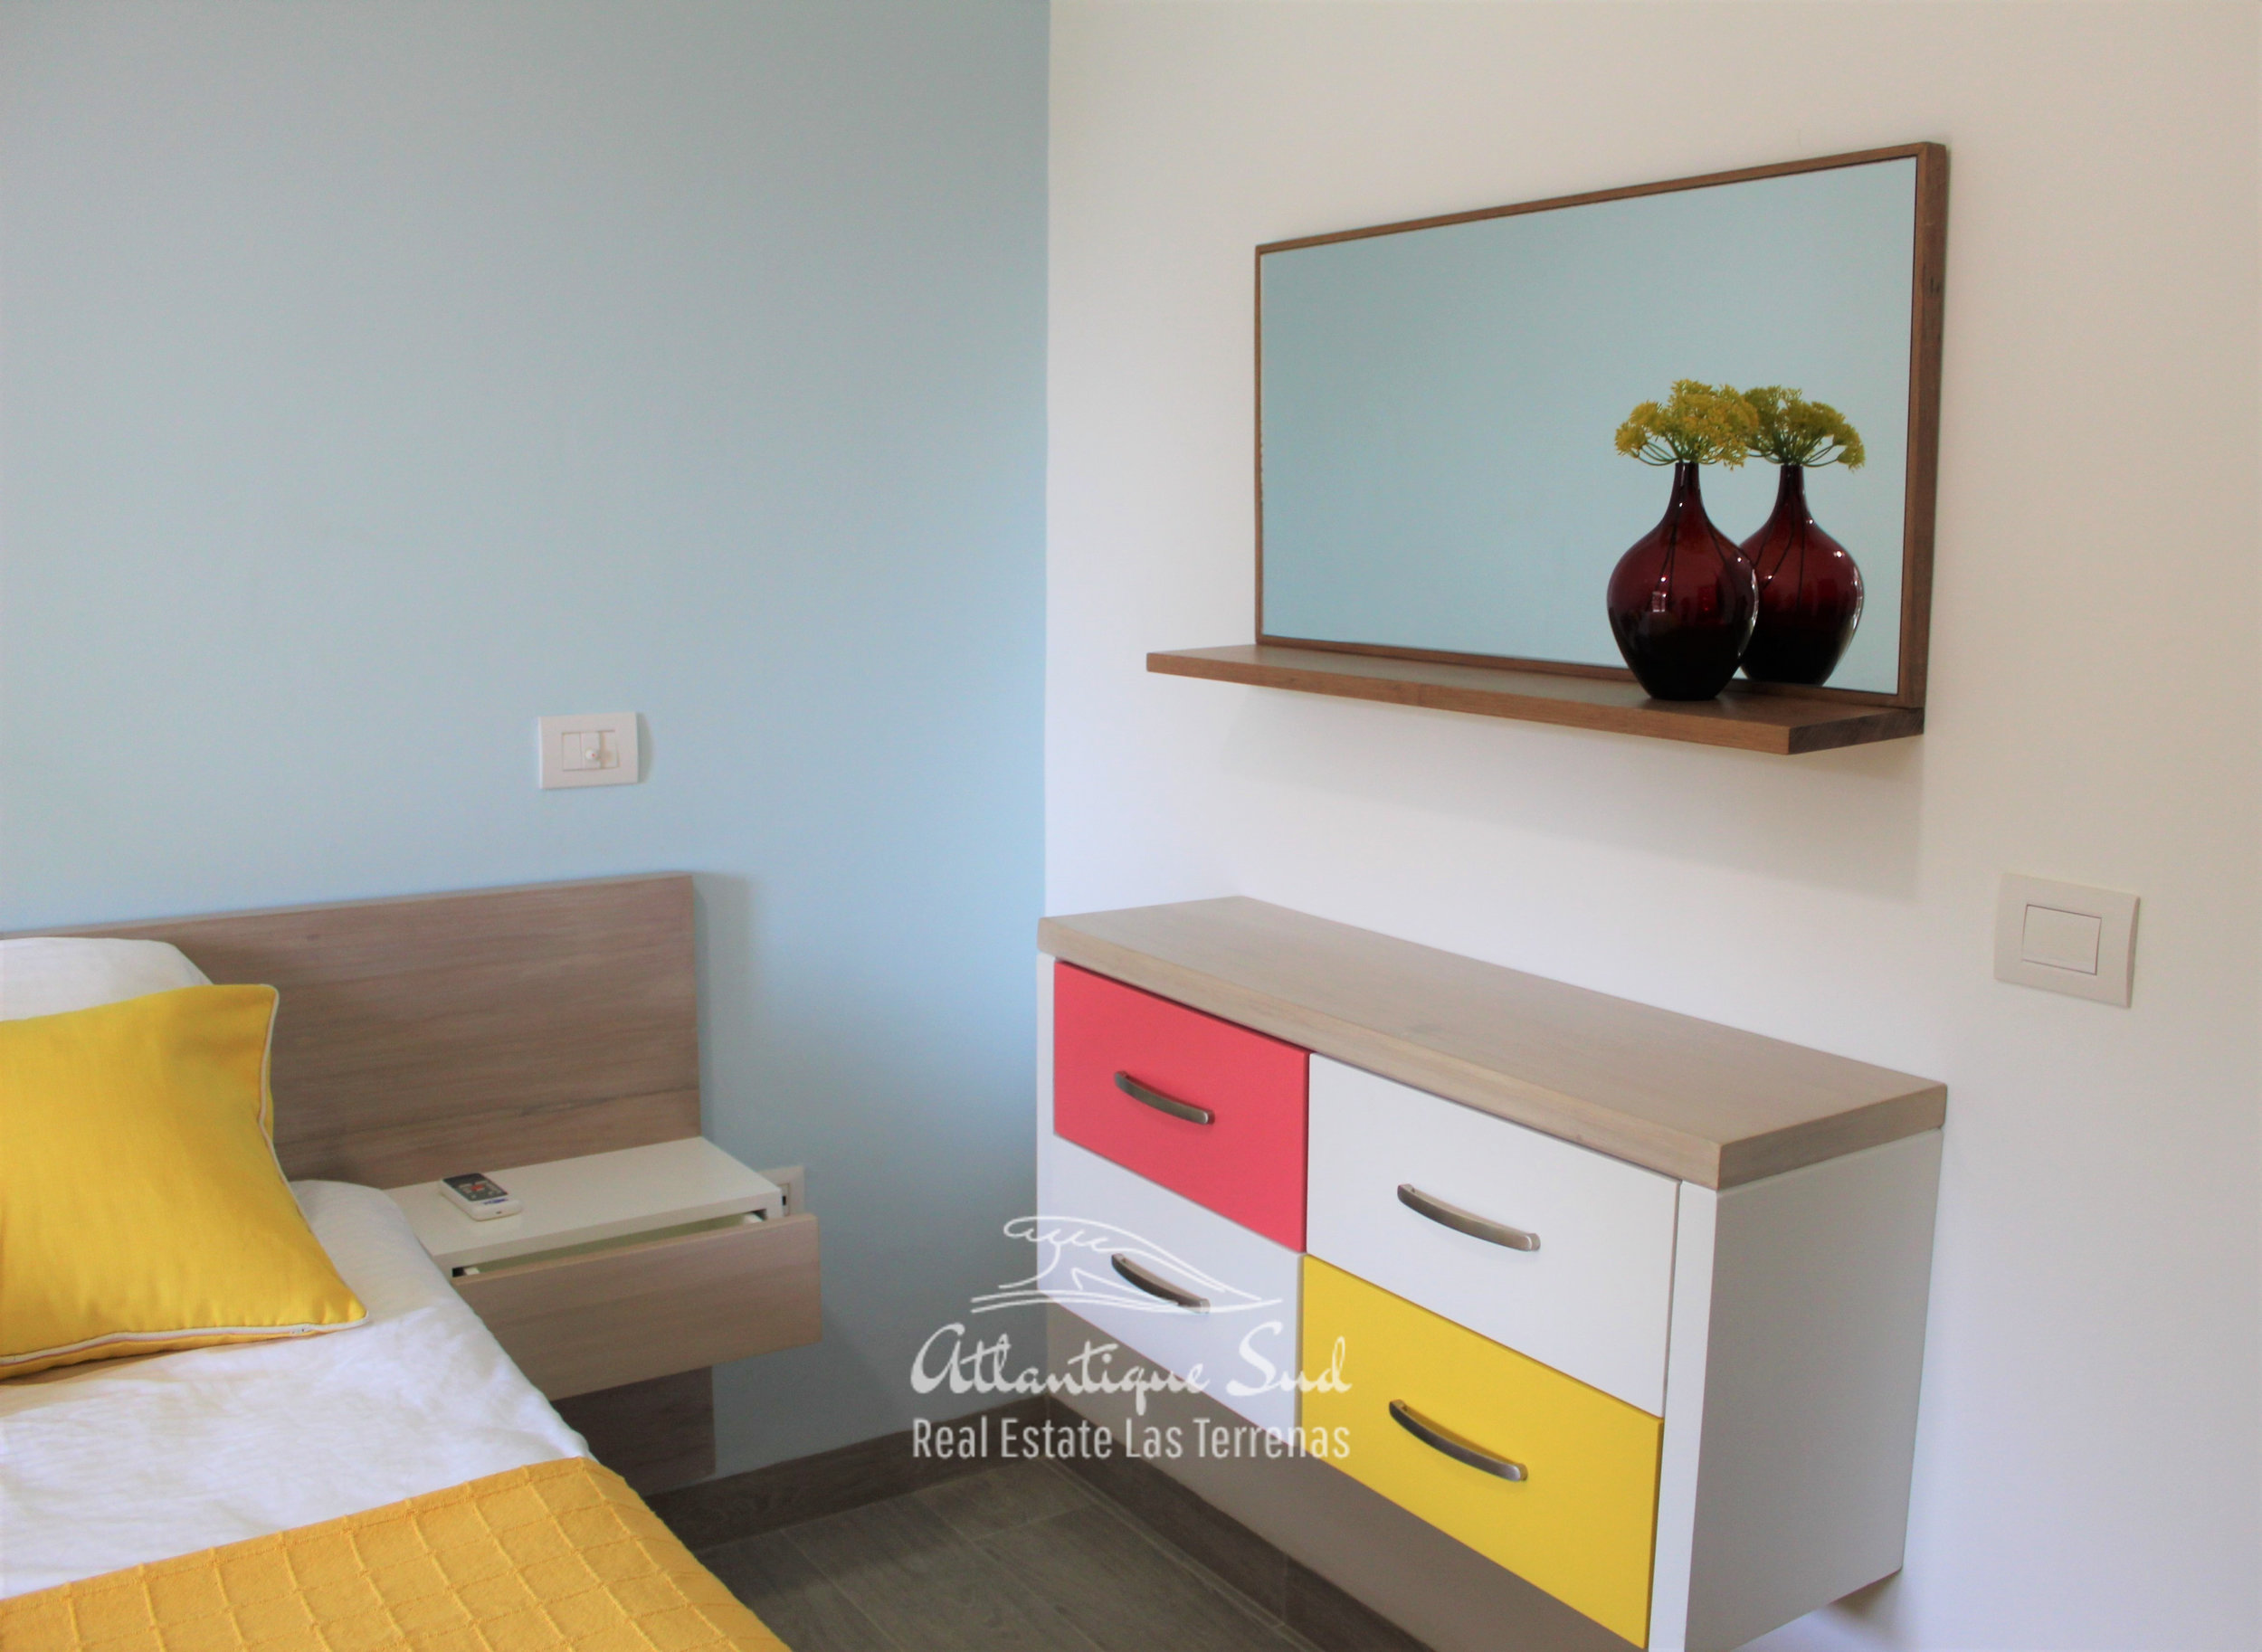 Cozy-1-bedroom-apartment-in-gated-community-close-to-the-center-of-lasterrenas4.jpg